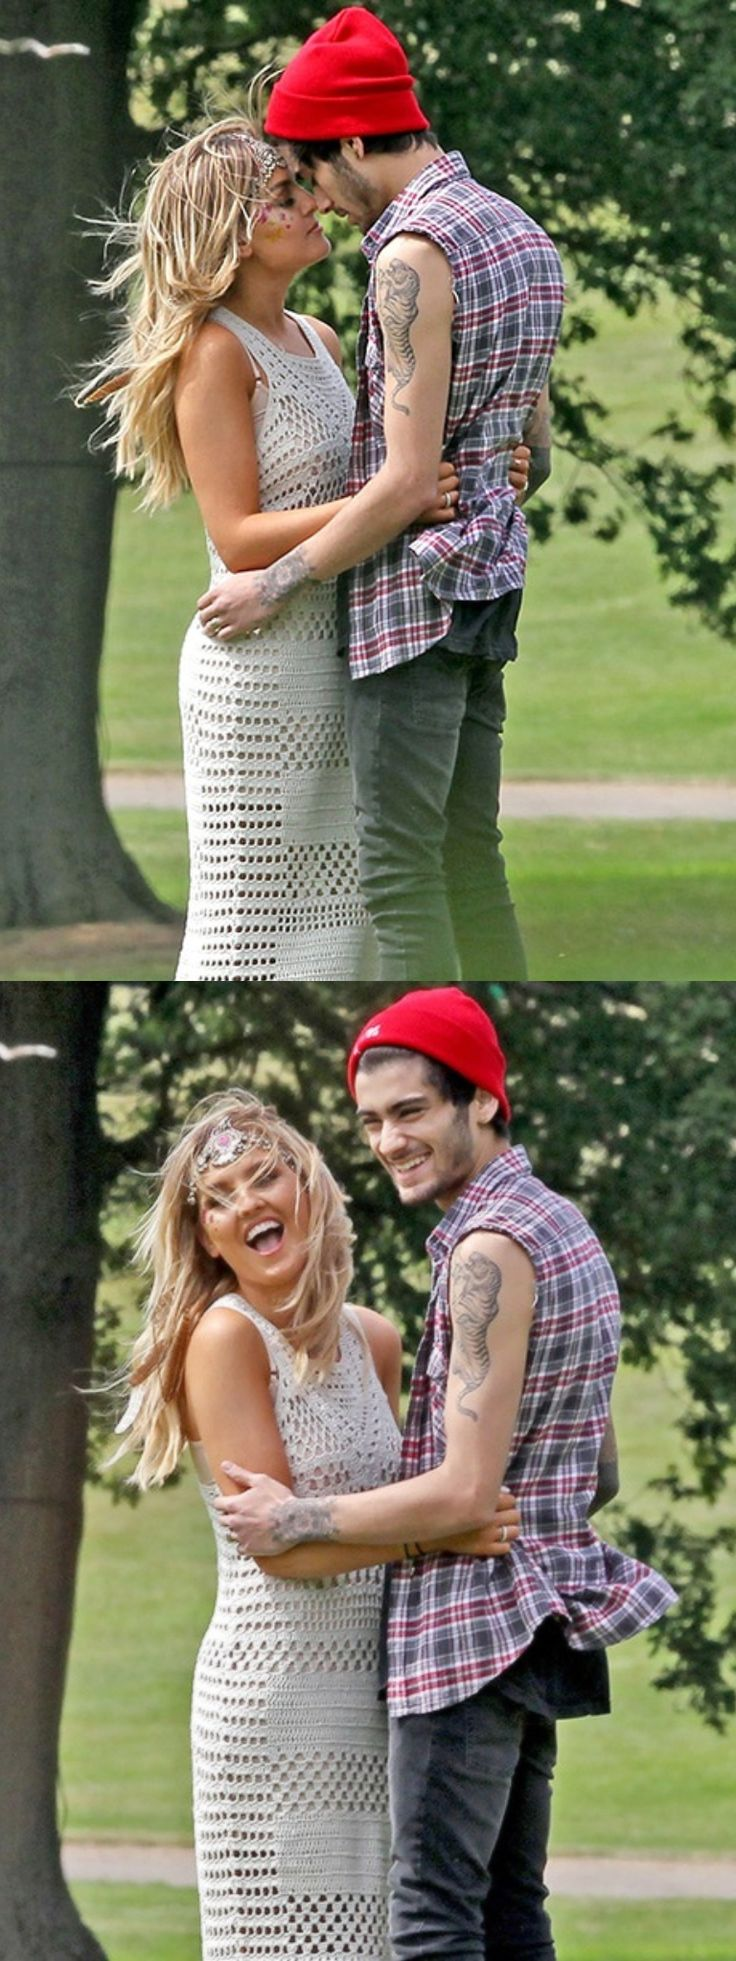 They are so cute!!  in the first picture they look like a couple in a movie like, I dont know. It's just so perfect